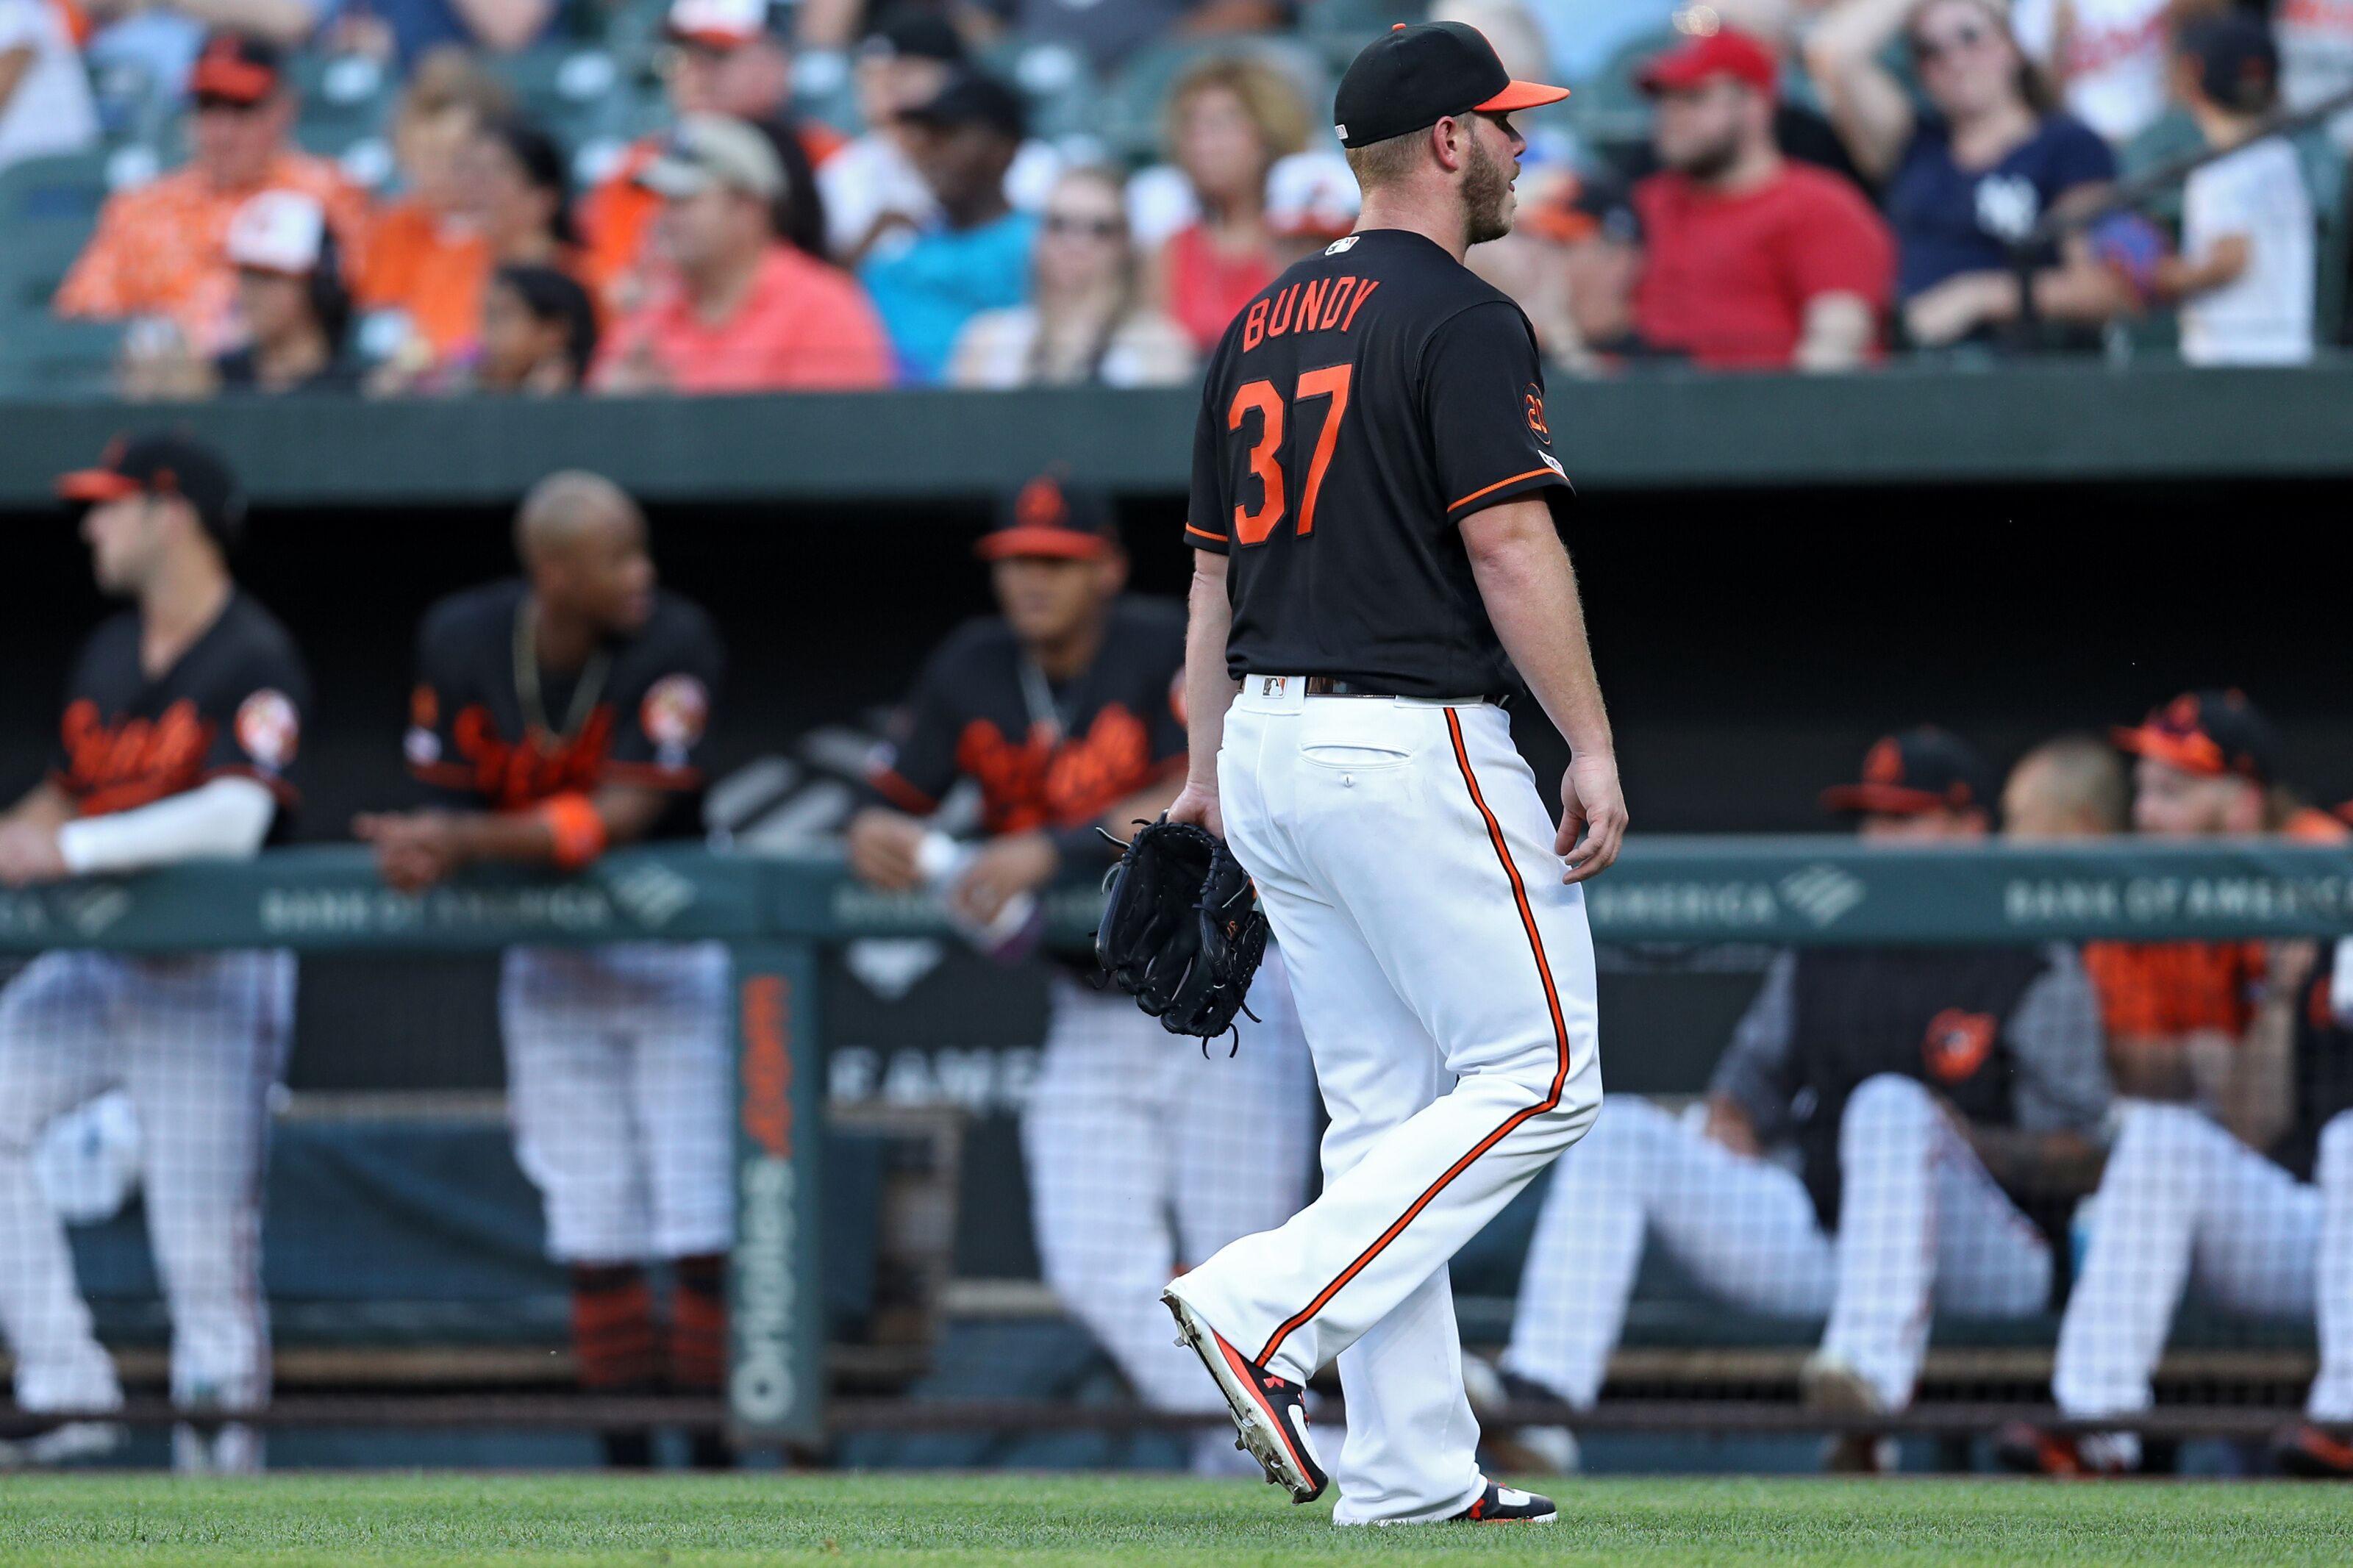 Baltimore Orioles: A Look At The Return For Dylan Bundy